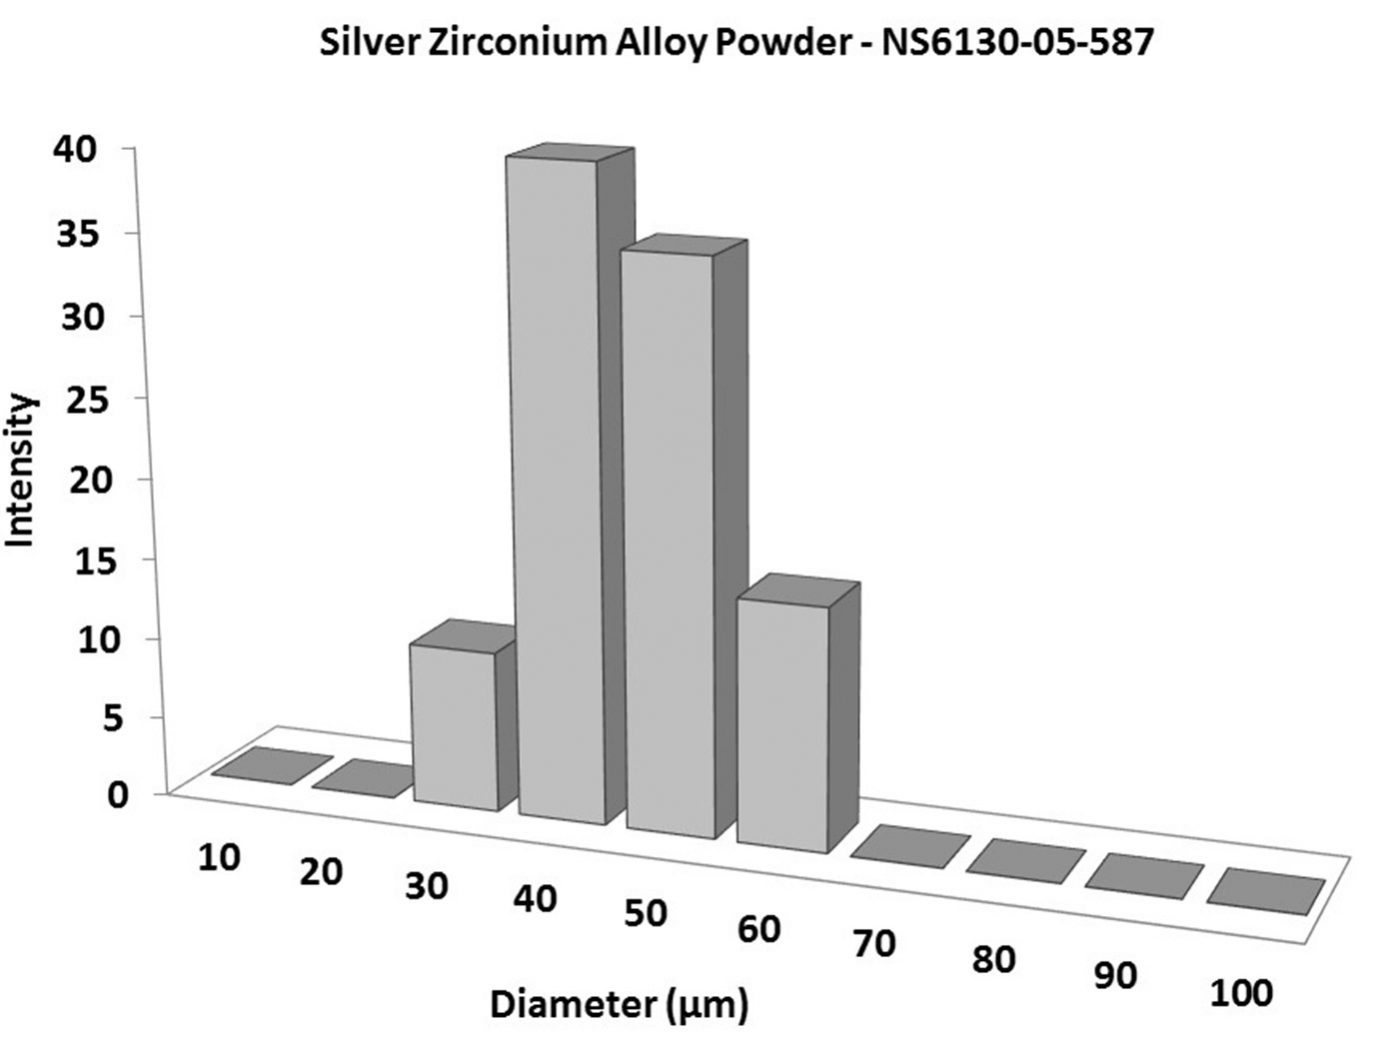 Particles Size Analysis – Silver Zirconium Alloy Powder